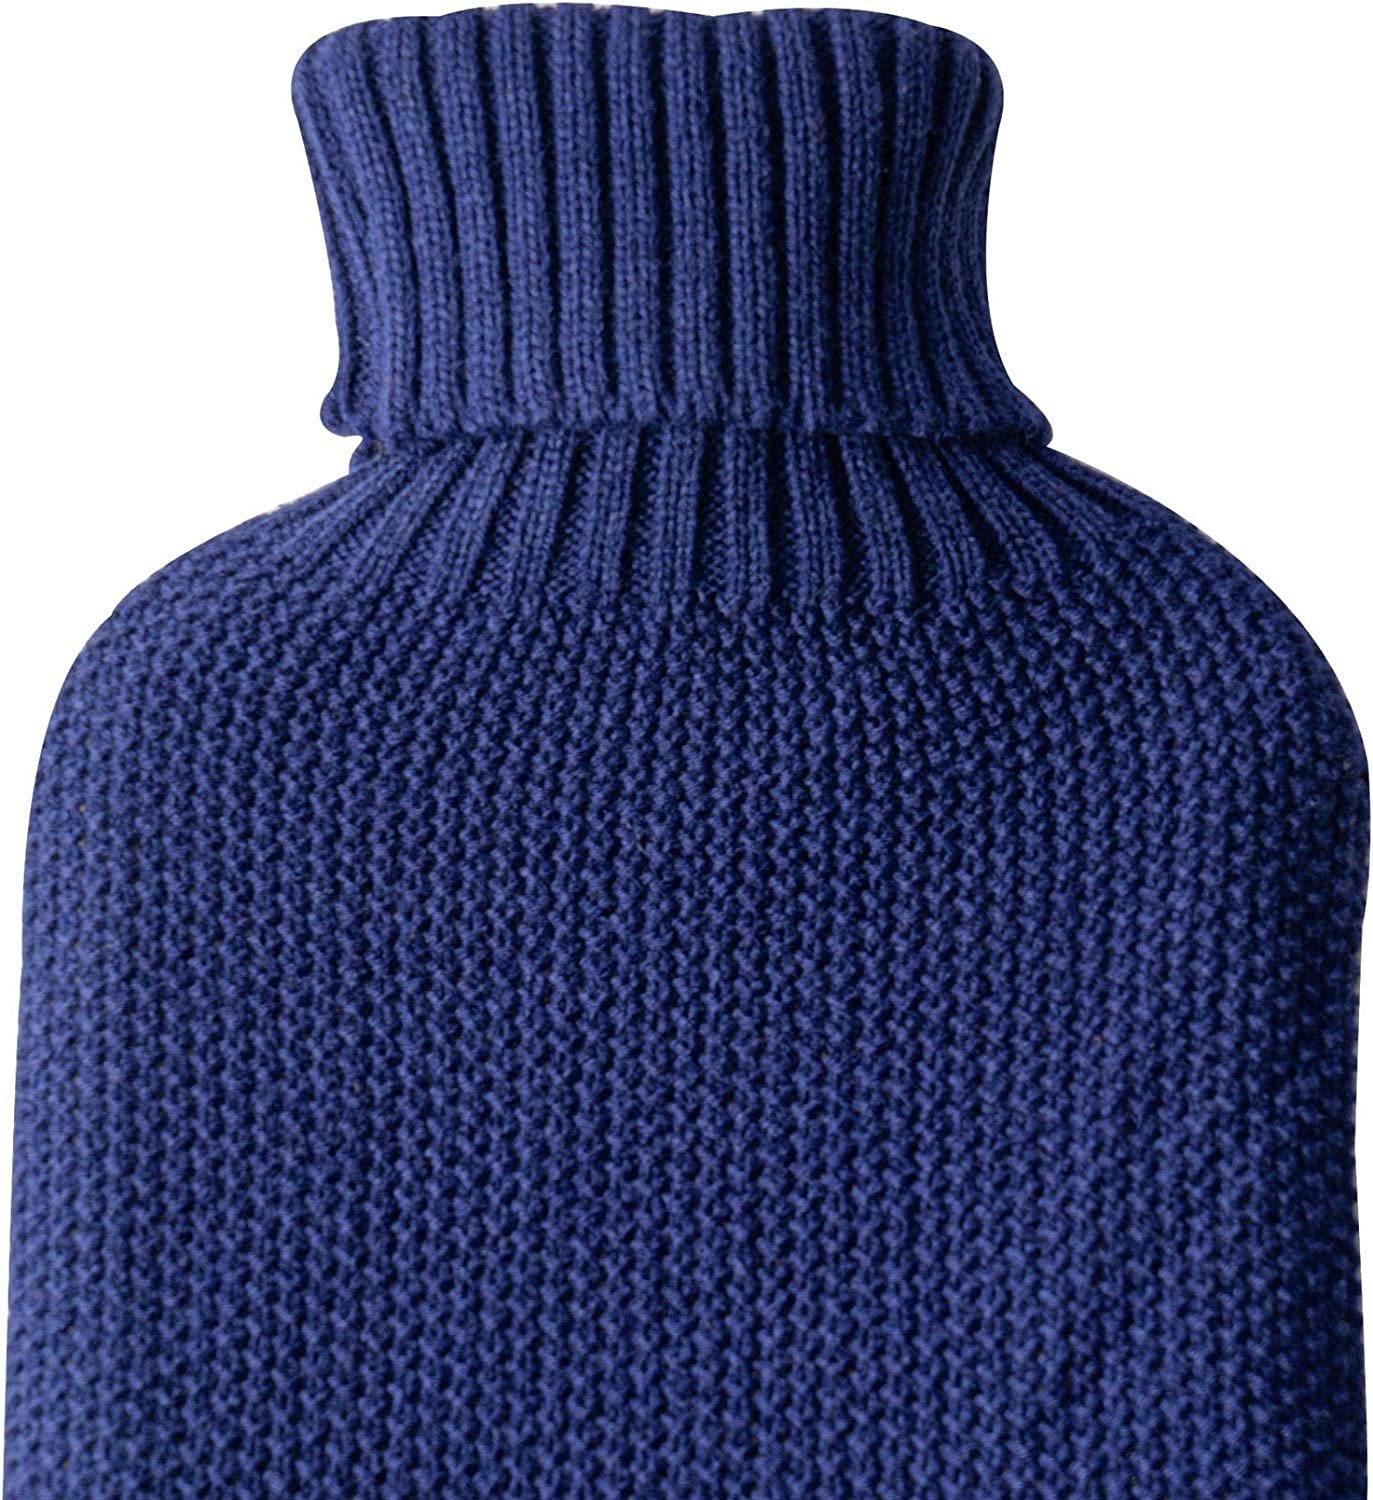 Nicola Spring Hot Water Bottle Knitted Cover Cover ONLY Midnight Blue Cosy Turtleneck Sleeve Fits Standard 2L Bottles